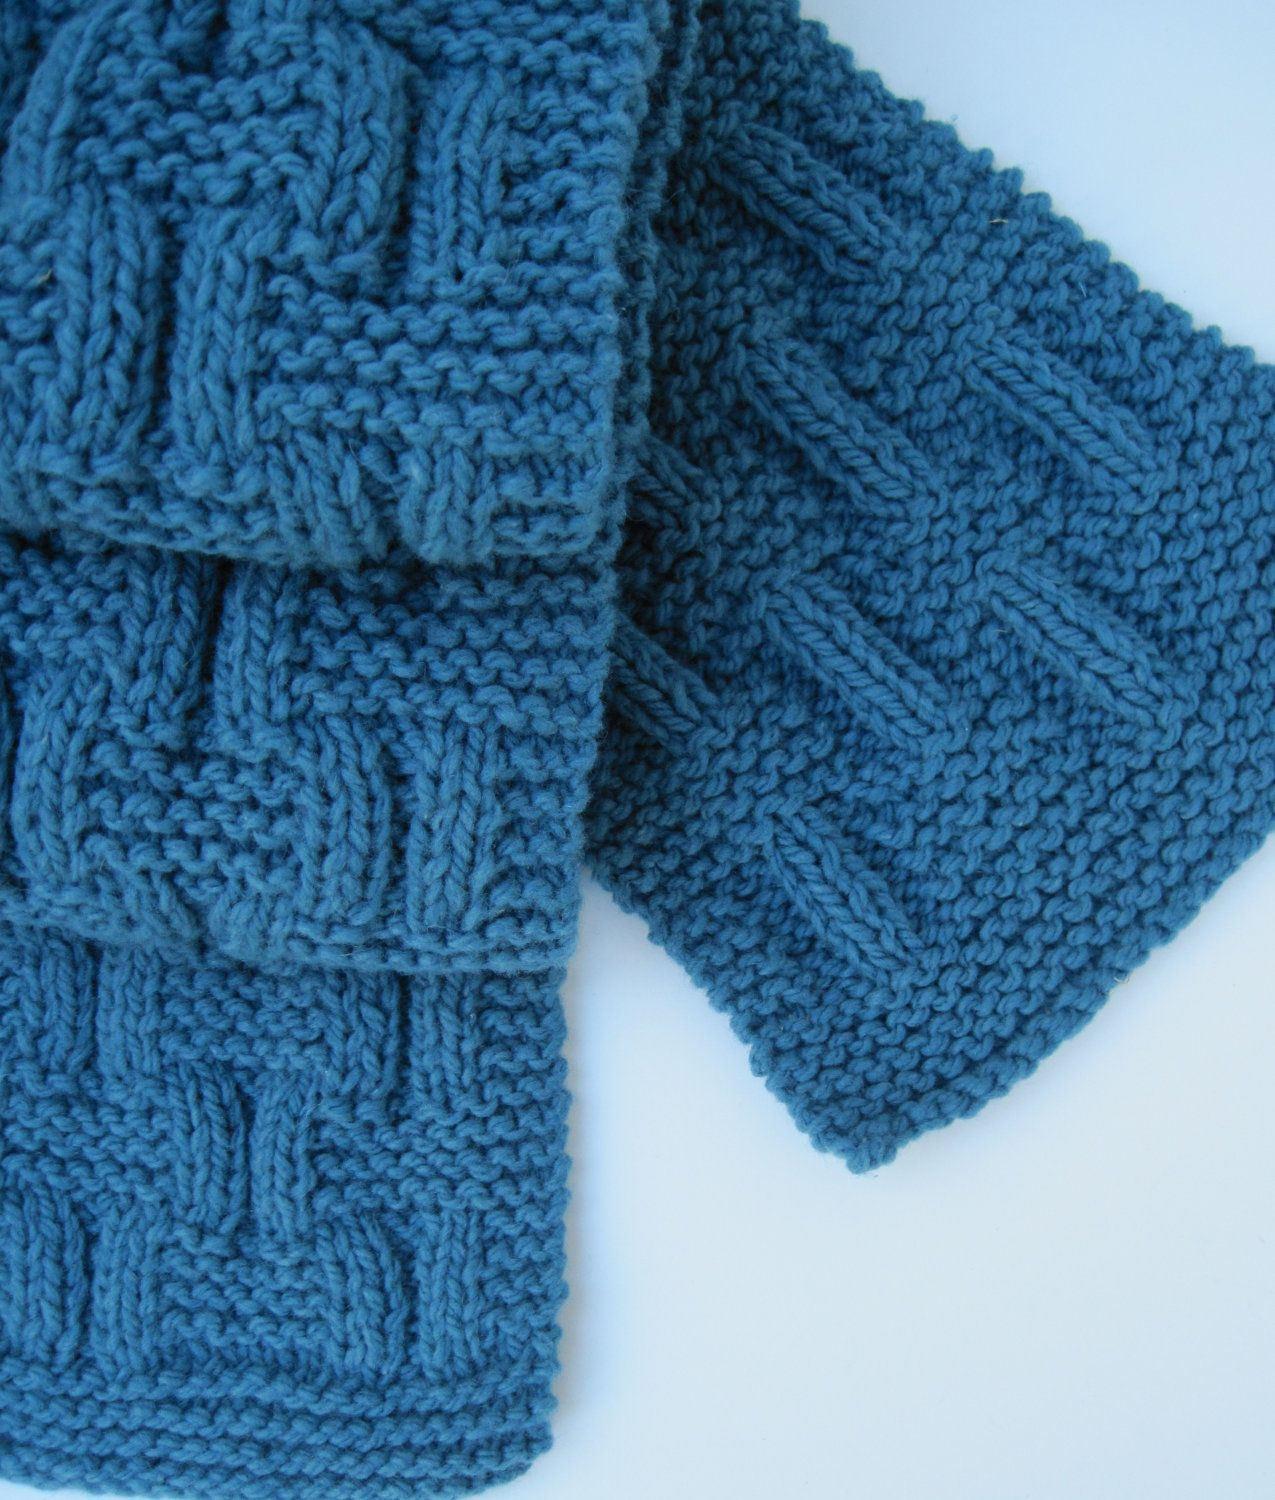 Ballet Leg Warmers Knitting Pattern : Knit scarf in teal blue - I think I can make this! Yarn Creations Pintere...